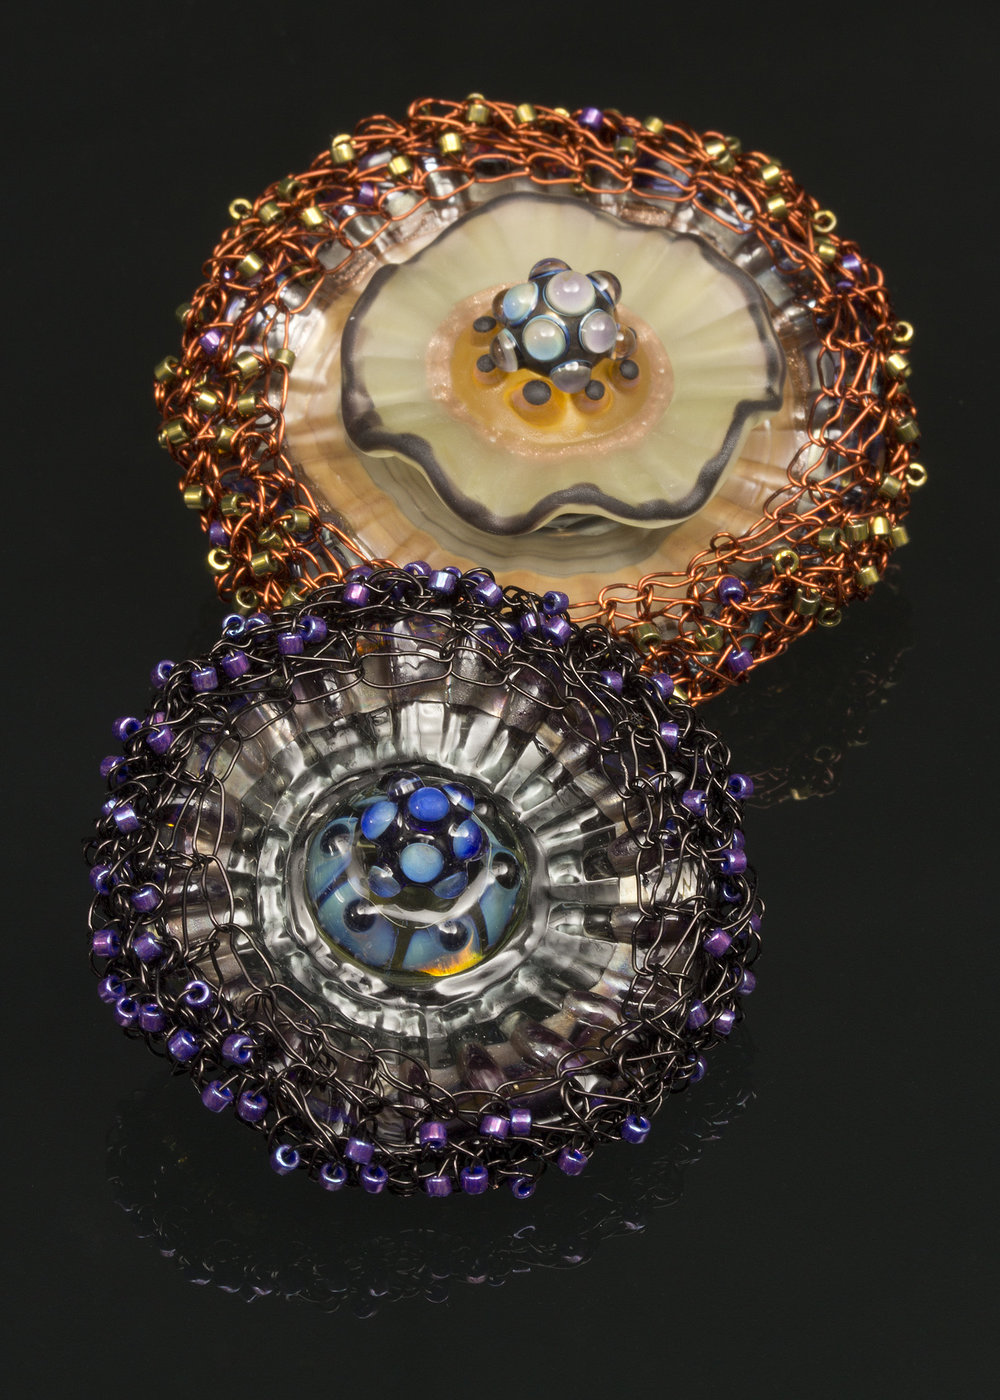 Anemone Pendants with Crocheted Beaded Embellishment